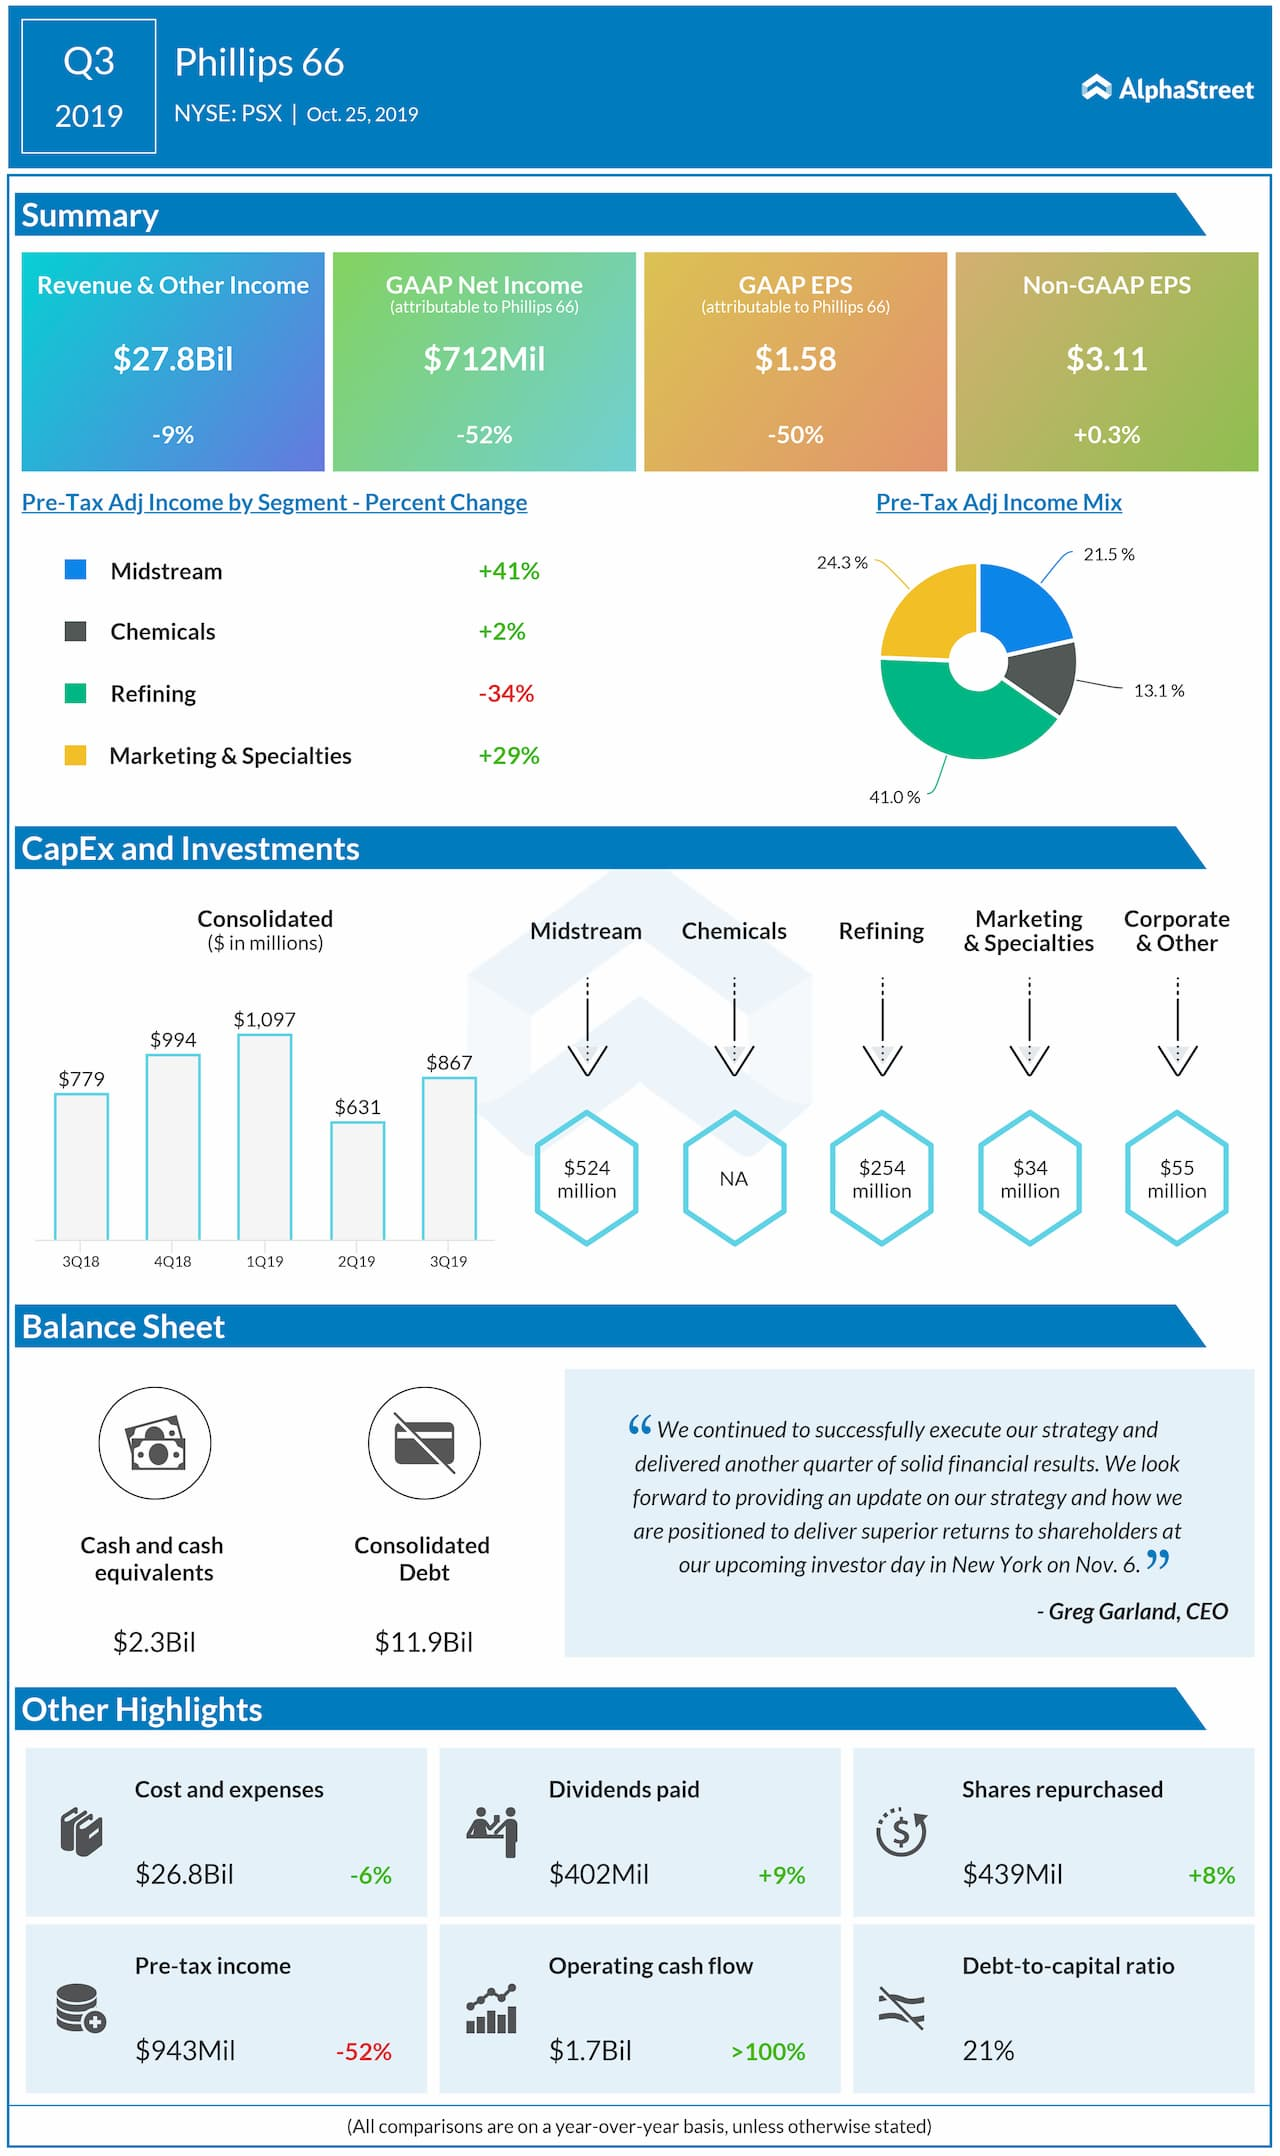 Phillips 66 (NYSE: PSX): Q3 2019 Earnings Snapshot